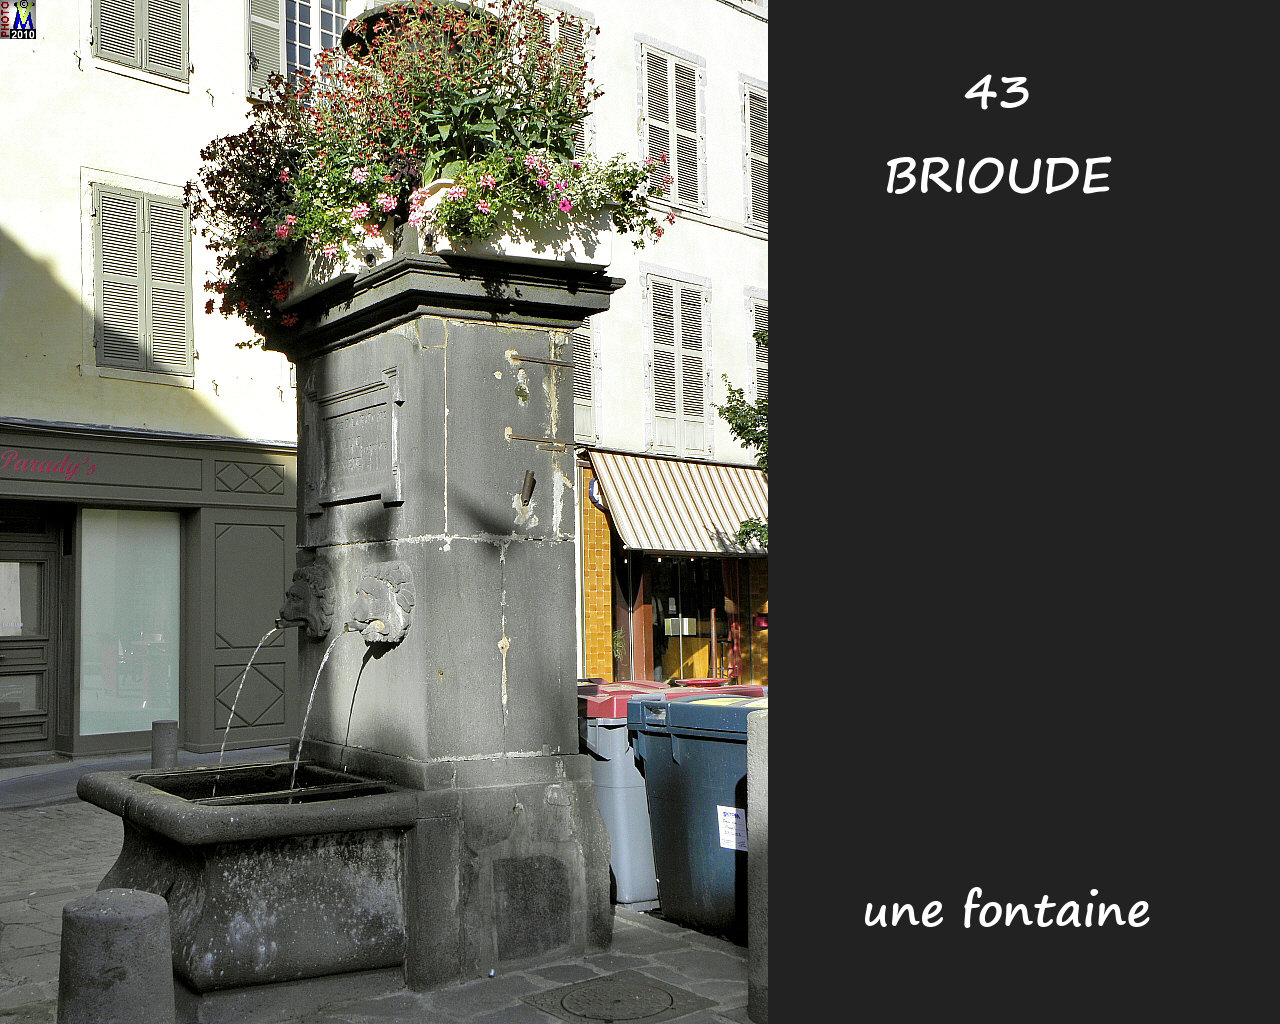 43BRIOUDE_fontaine_100.jpg